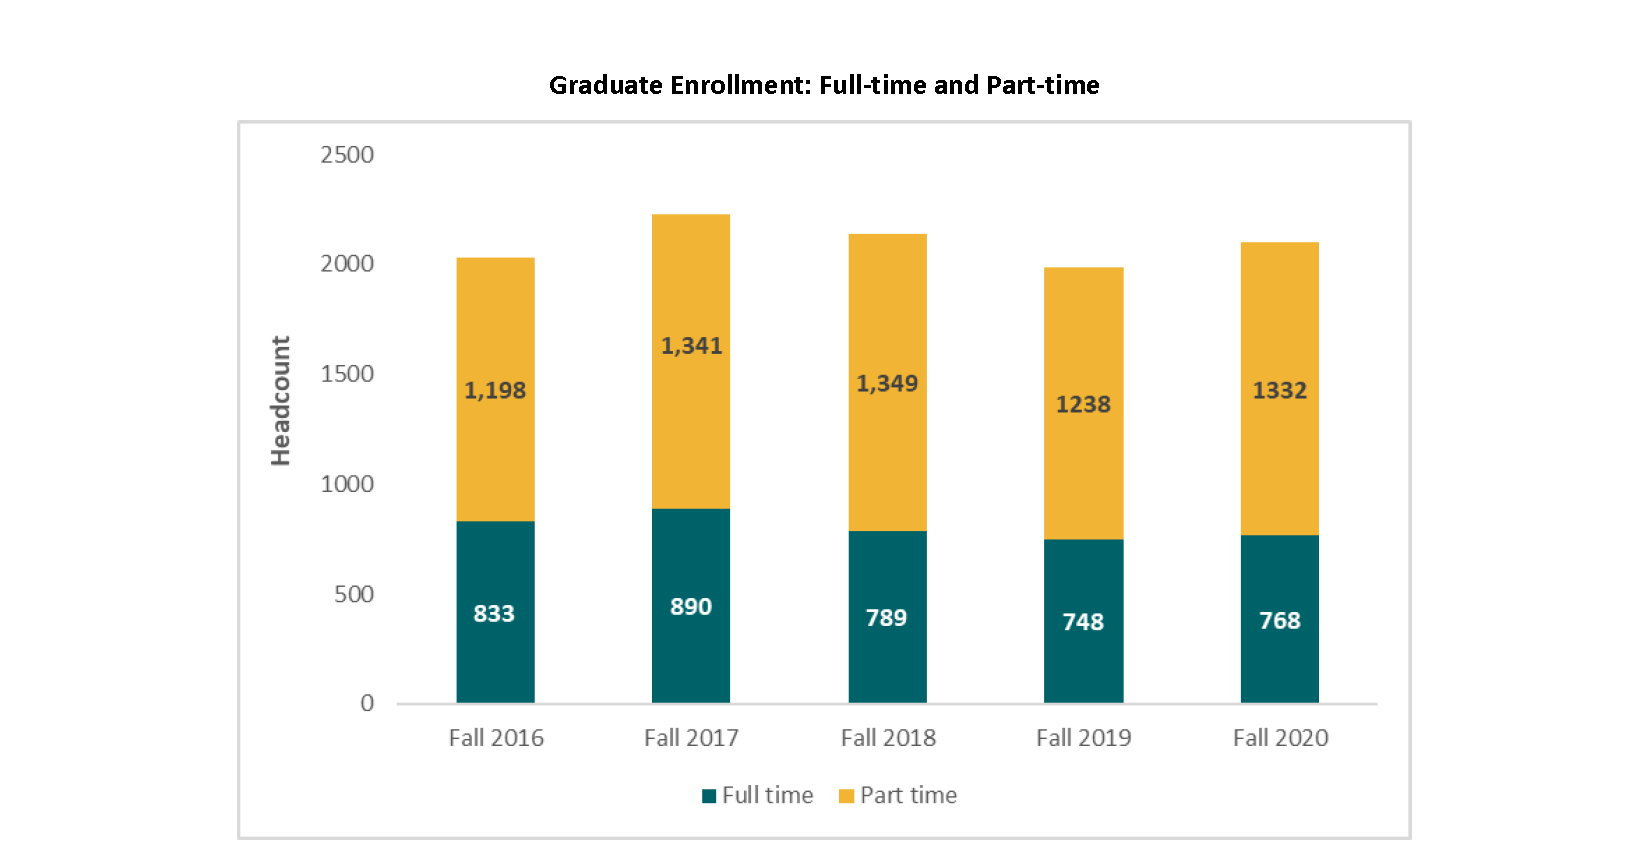 Graduate Enrollment: Full-time and Part-time